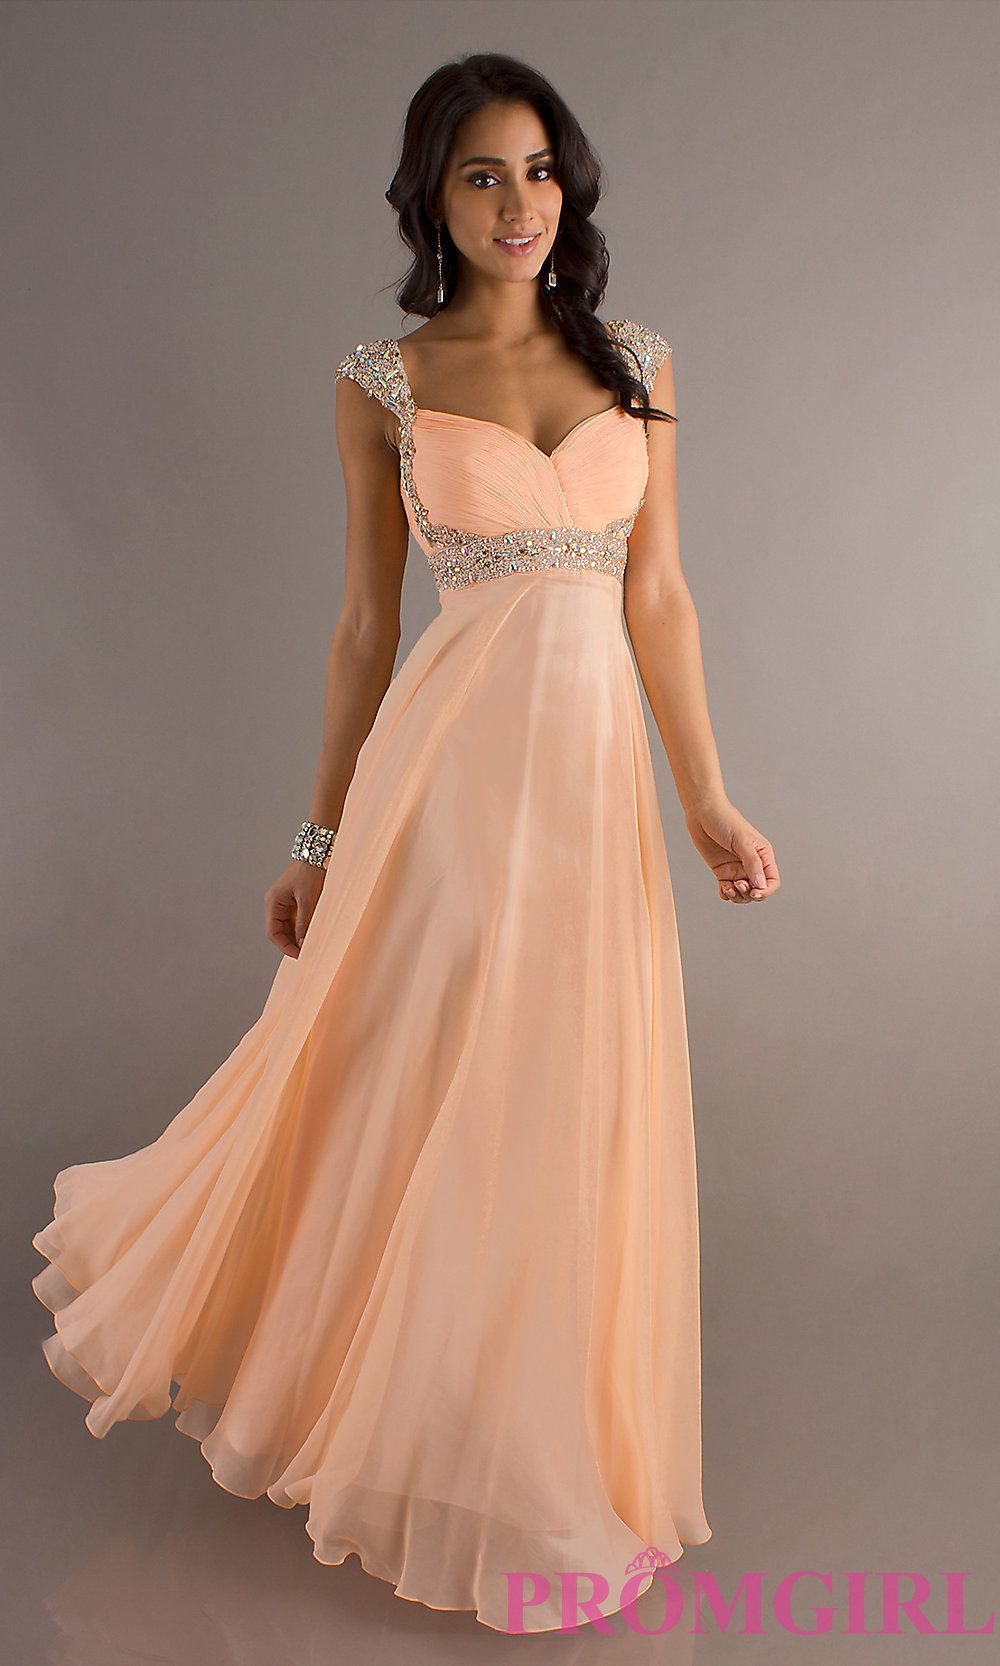 Long Dave and Johnny Cap-Sleeve Peach Prom Dress | Long prom ...